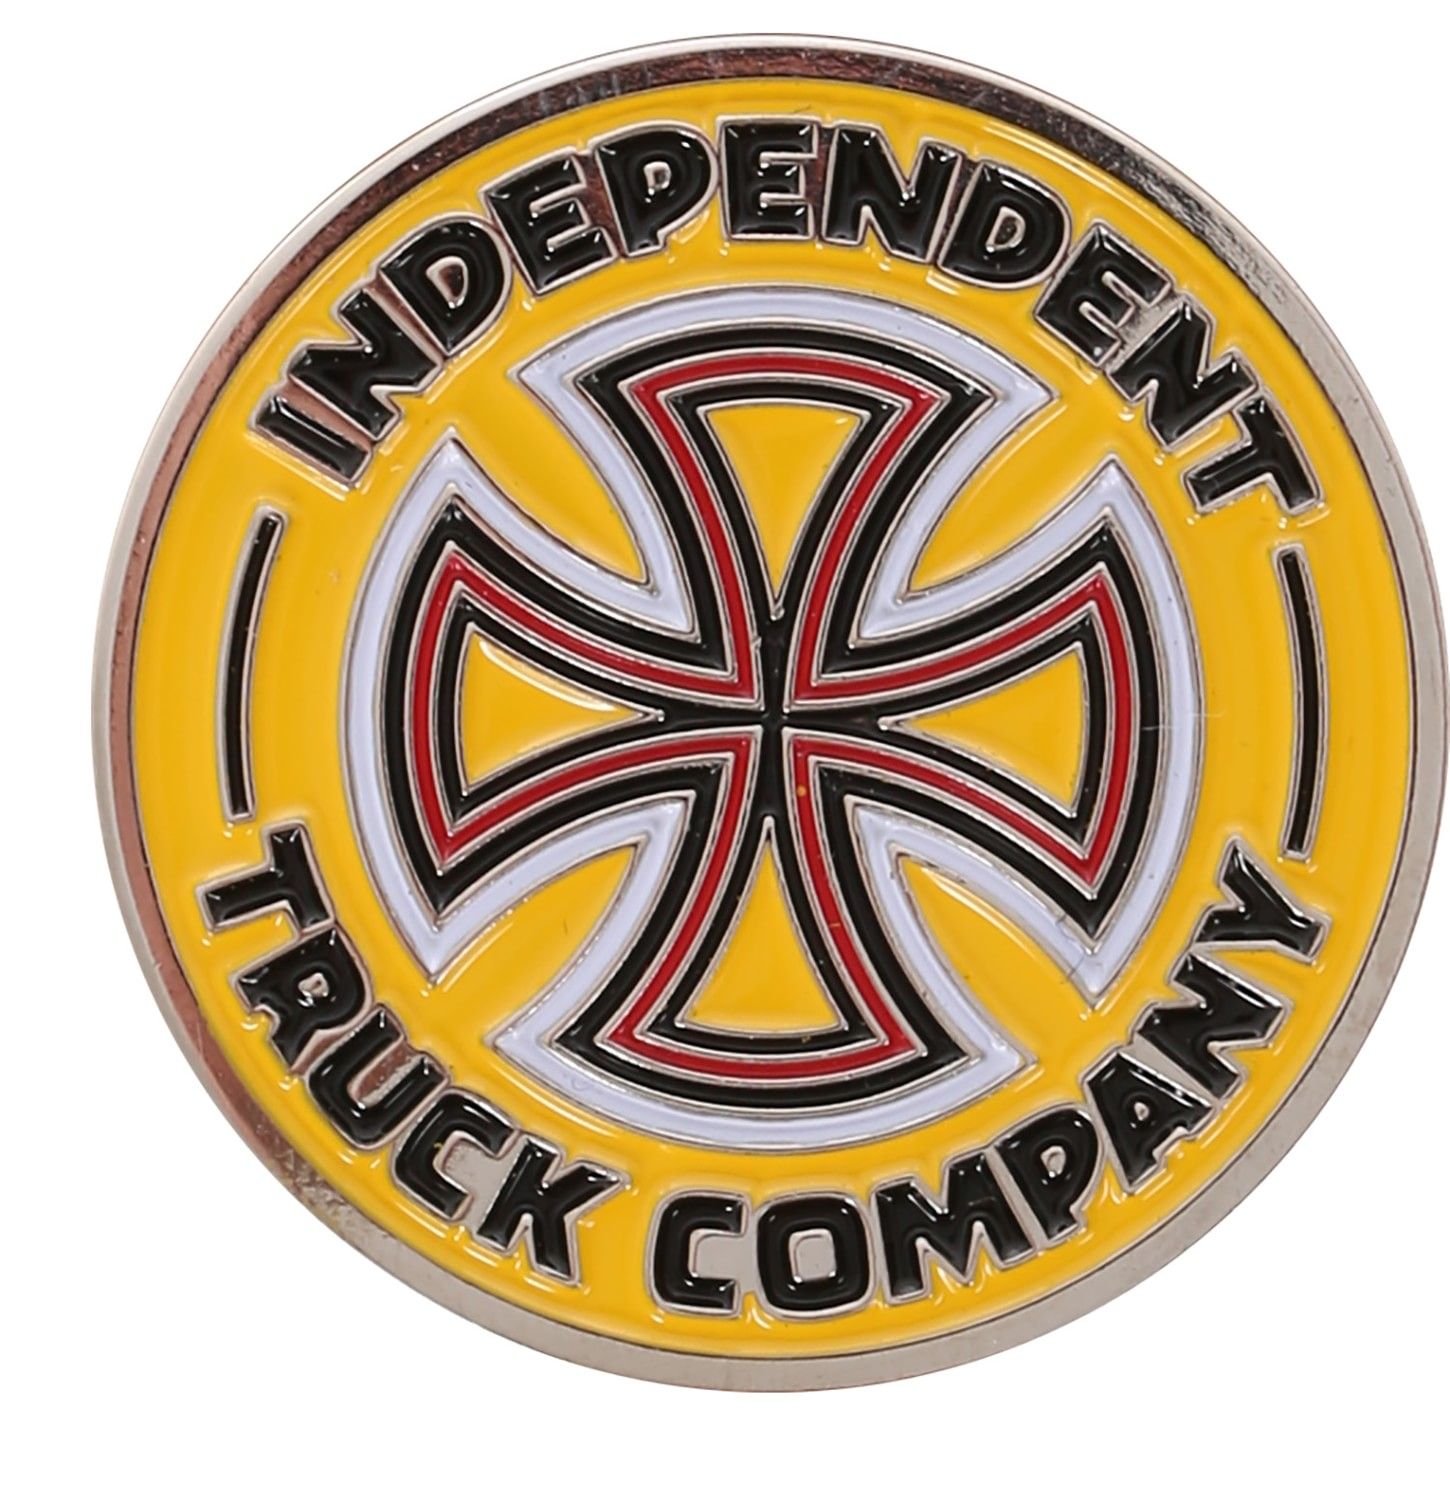 independent-combi-t-c-pin-yellow